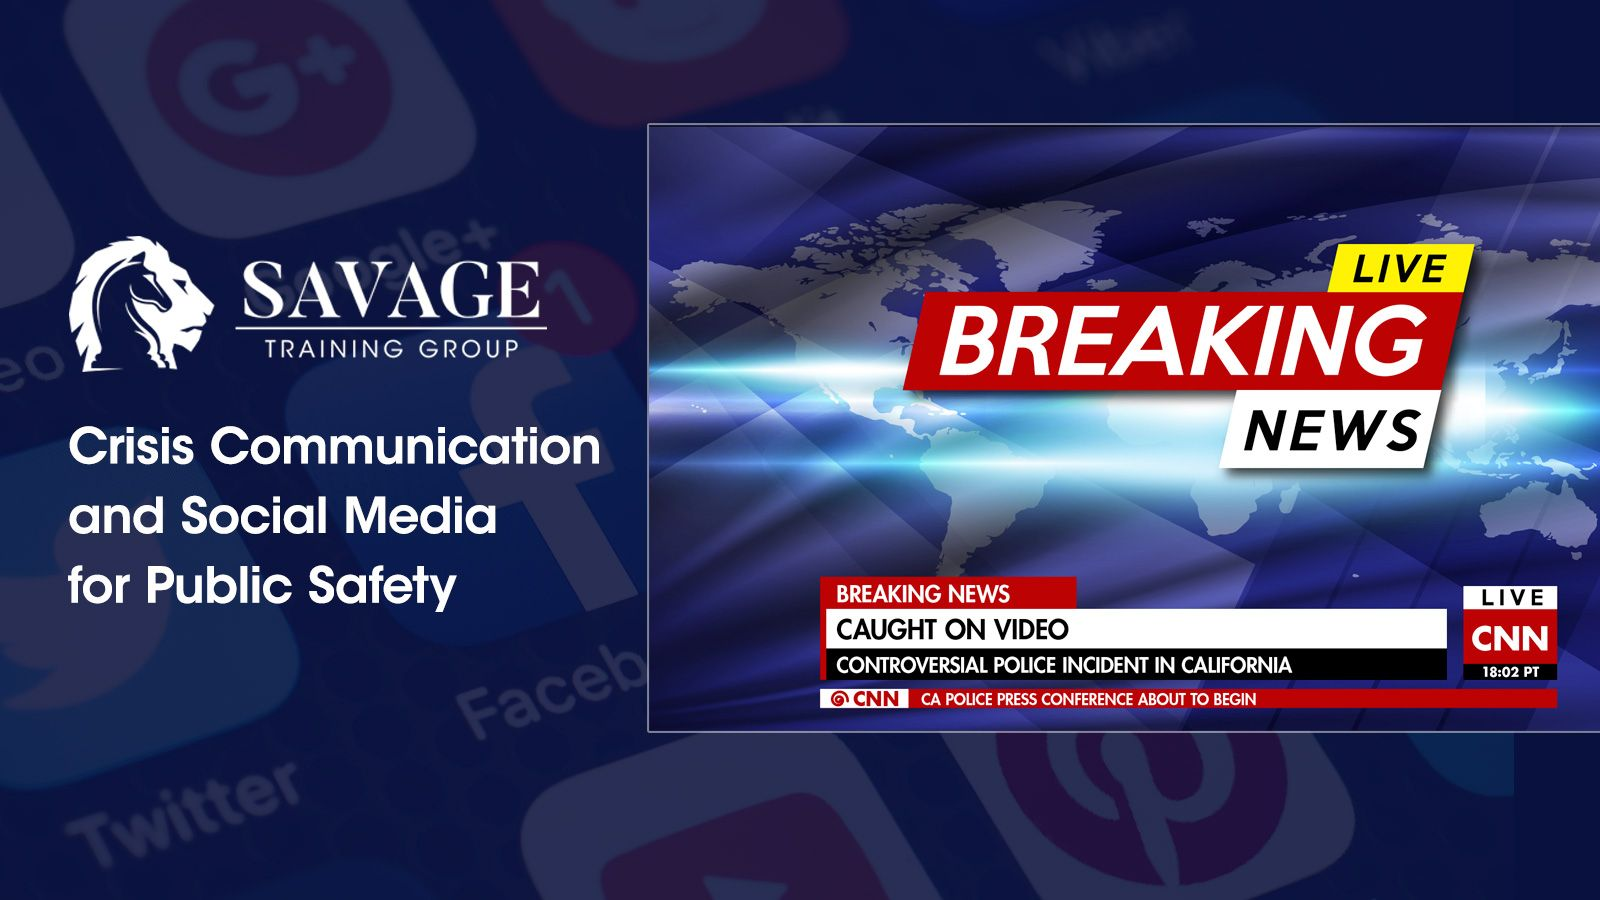 Savage Training Group | Crisis Communication and Social Media for Public Safety